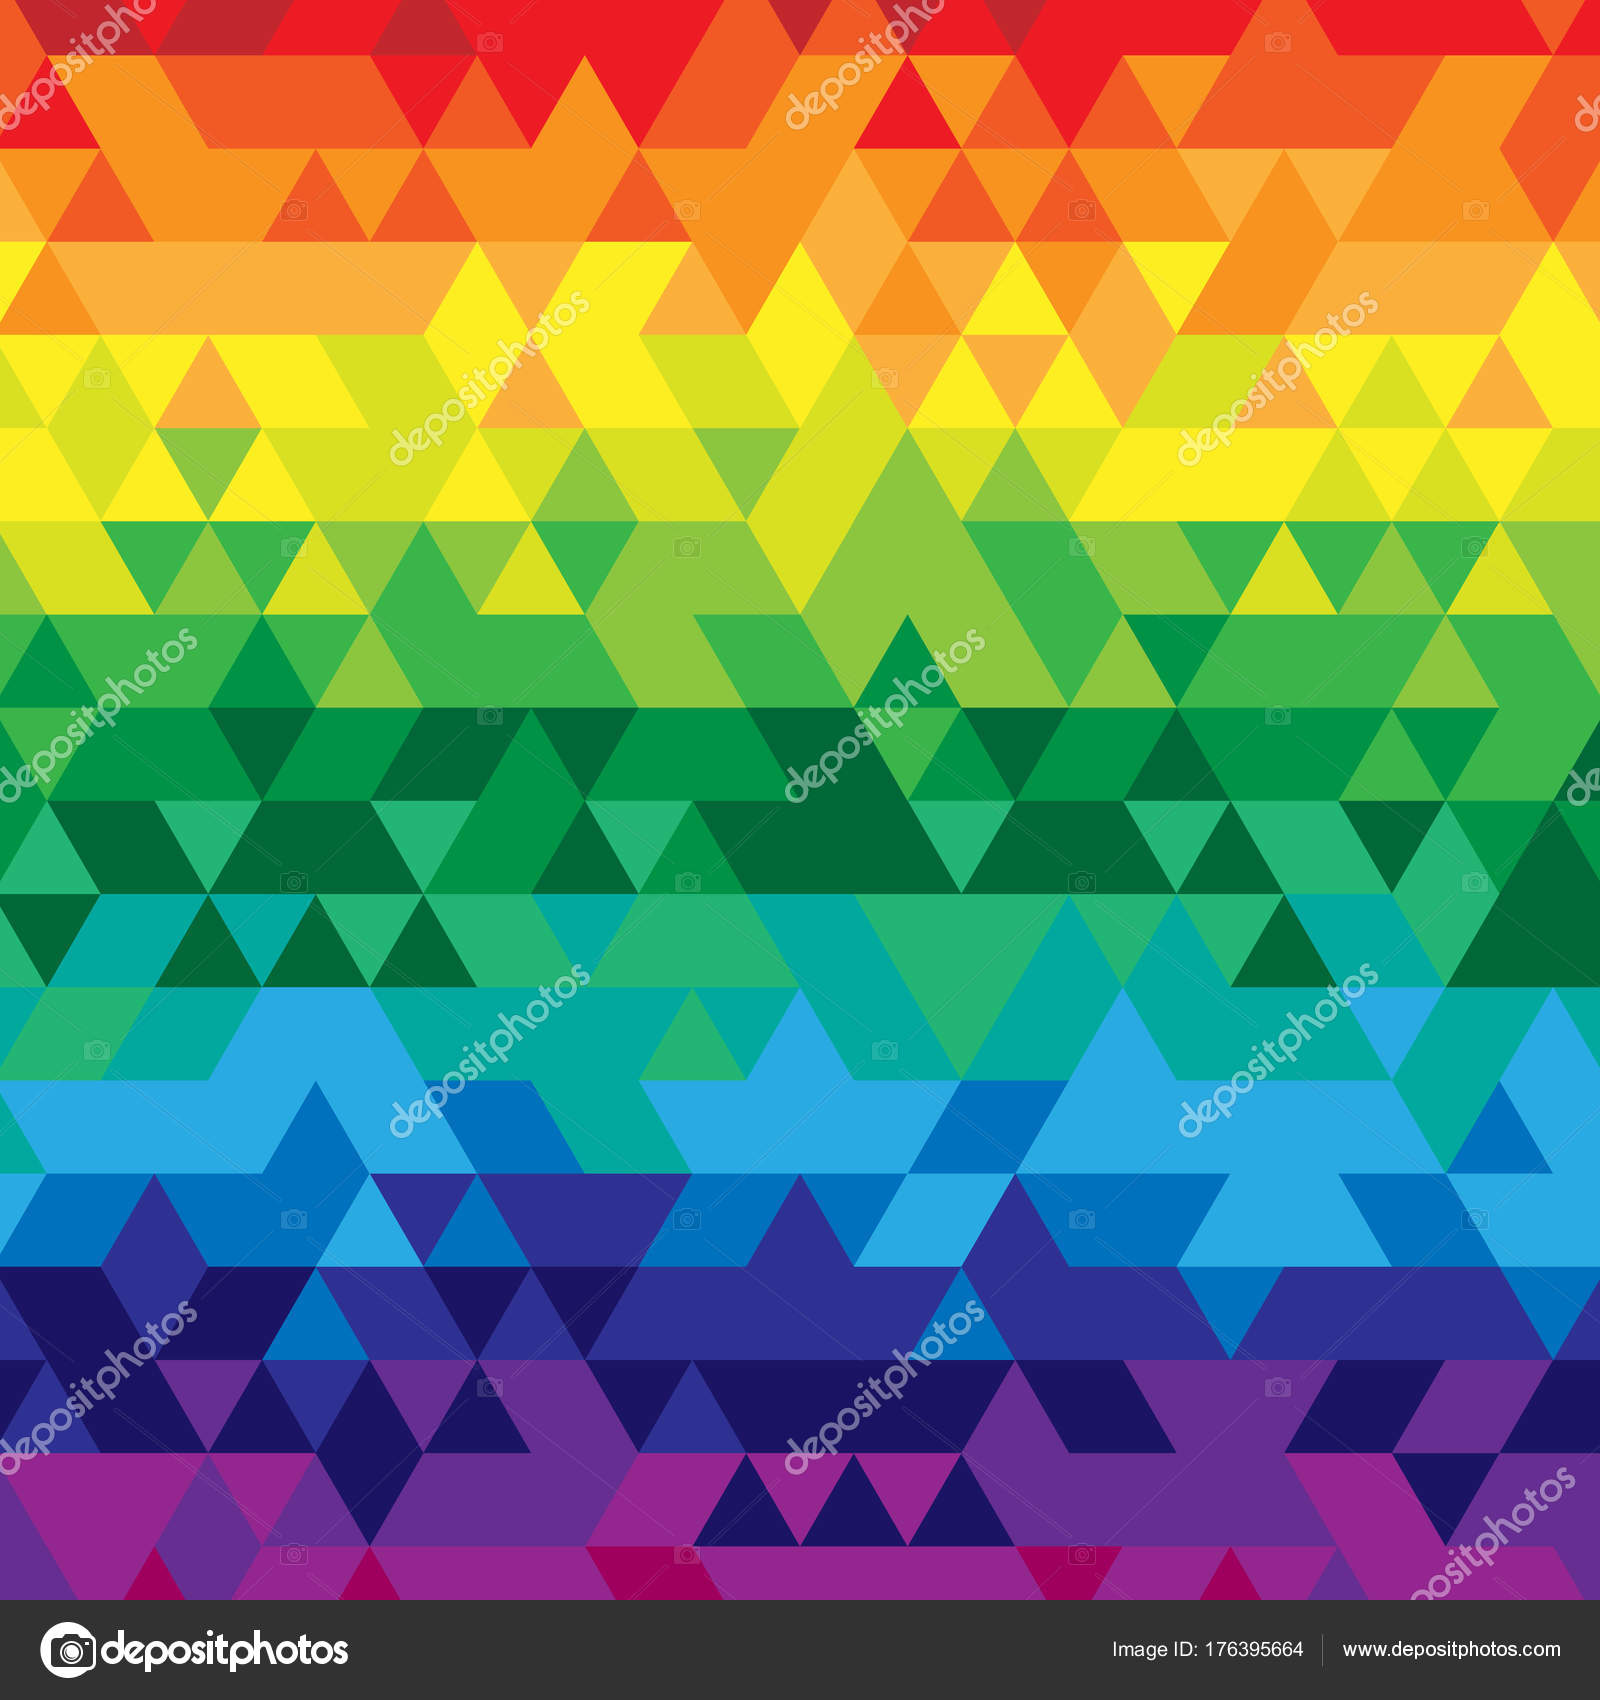 Rainbow Colors Red Orange Yellow Green Blue Abstract Low Poly Simple Web Template Background Pattern Gradient Frame Design Poster Vector By Pixelae